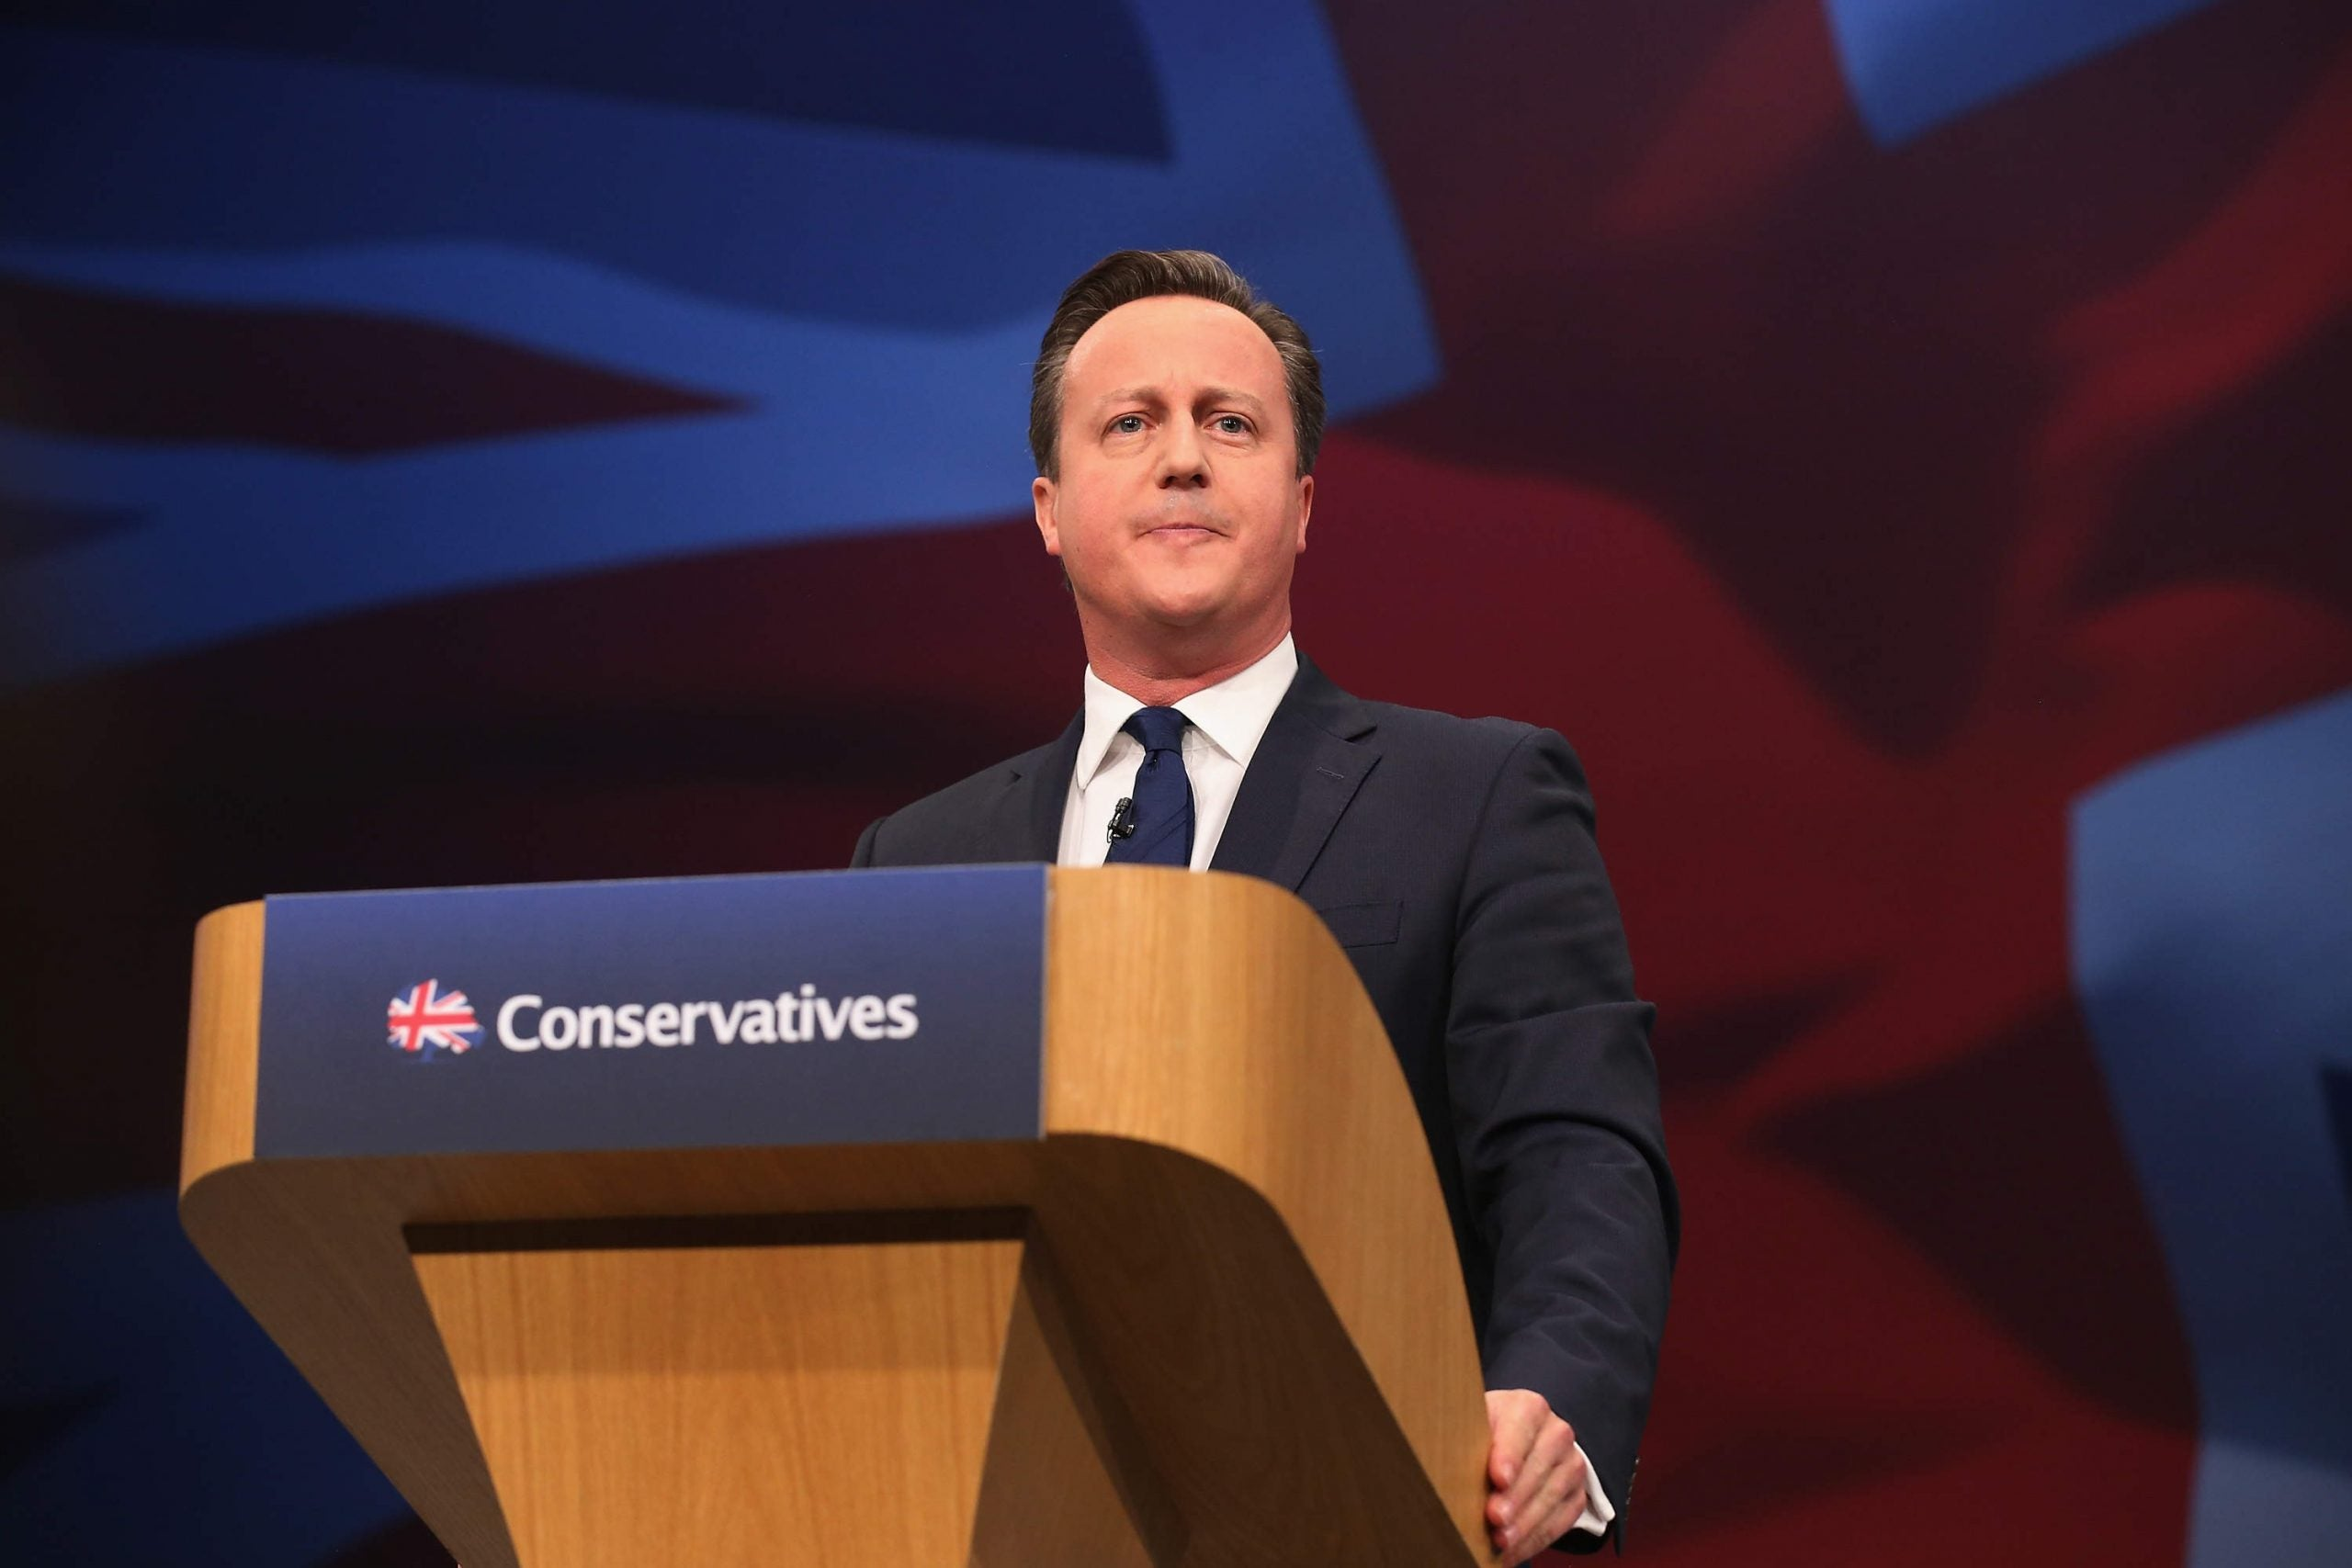 The Tories' aim is to put Labour out of business for good